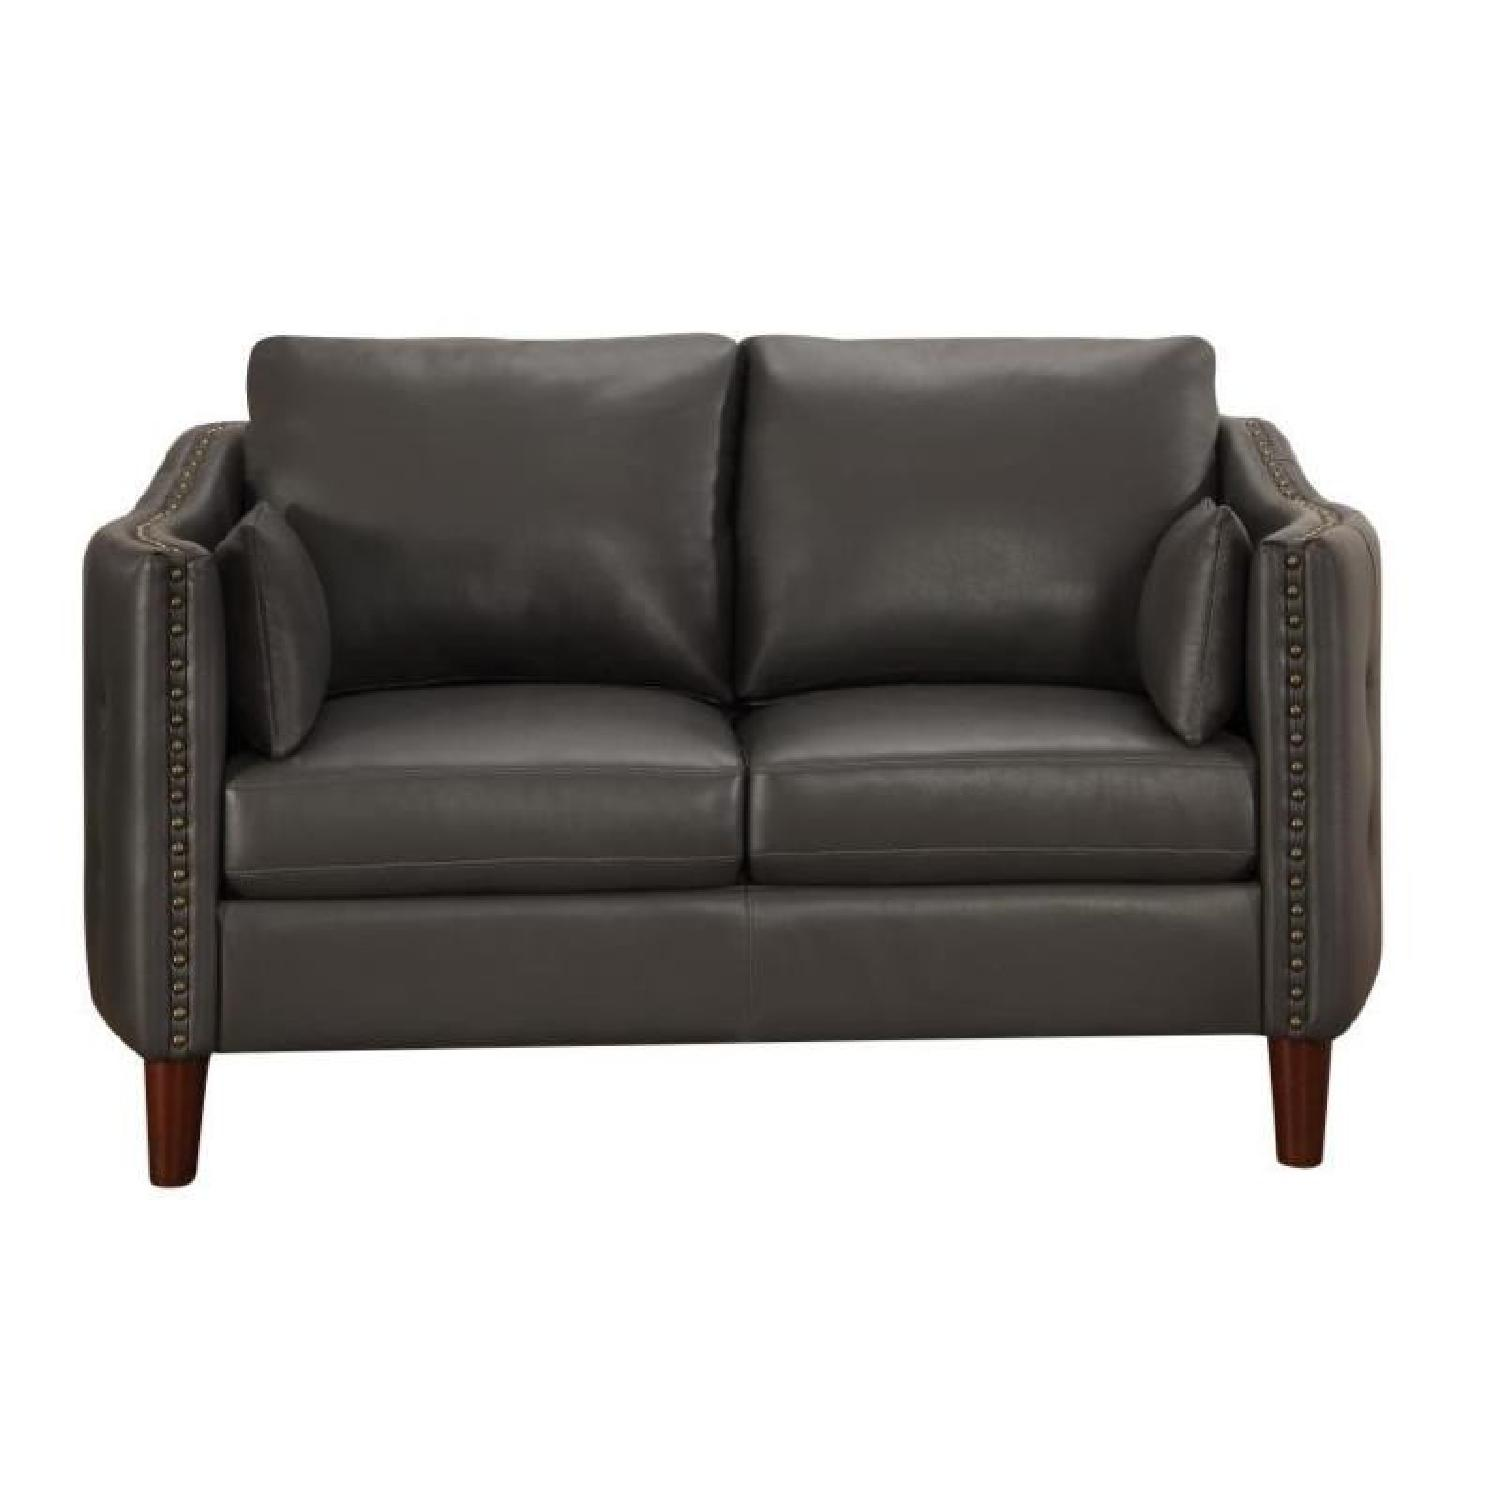 Loveseat in Dark Grey Leatherette w/ Nailhead Accent & Button Tufted Sides